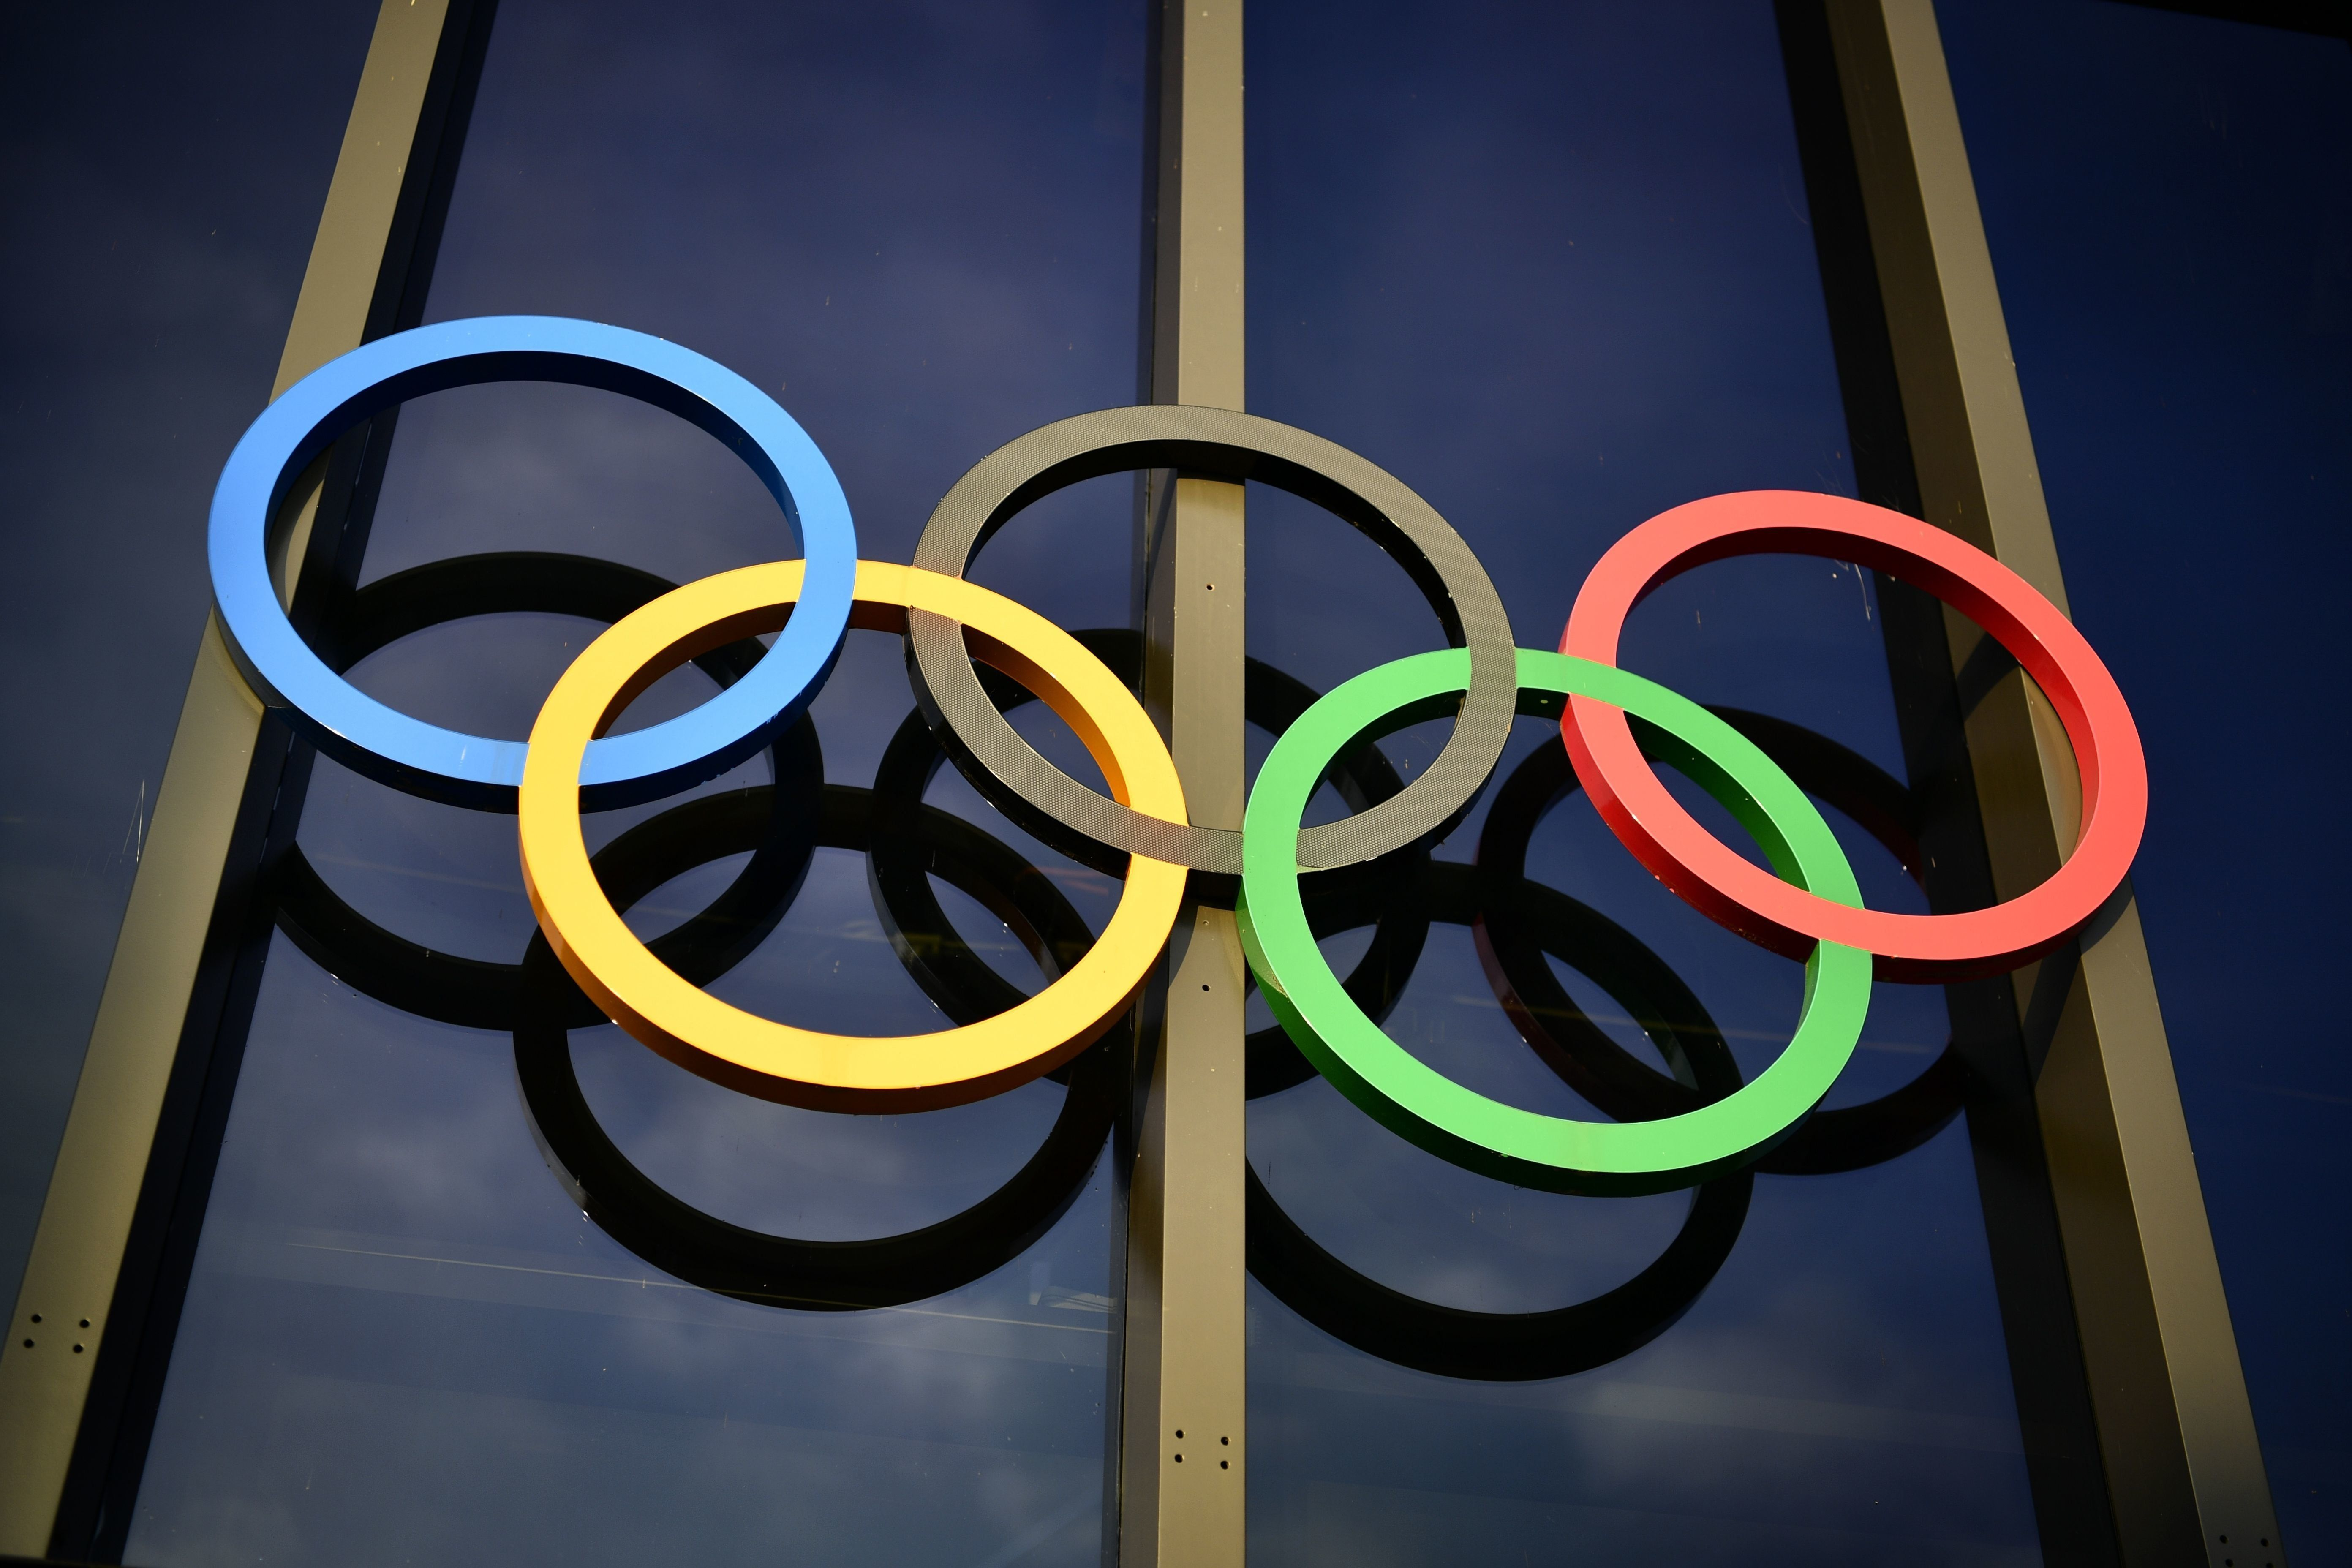 The Olympic rings are seen above the entrance on the facade of the Olympic Museum in Lausanne, Switzerland, on December 7, 2016. / AFP / FABRICE COFFRINI        (Photo credit should read FABRICE COFFRINI/AFP/Getty Images)